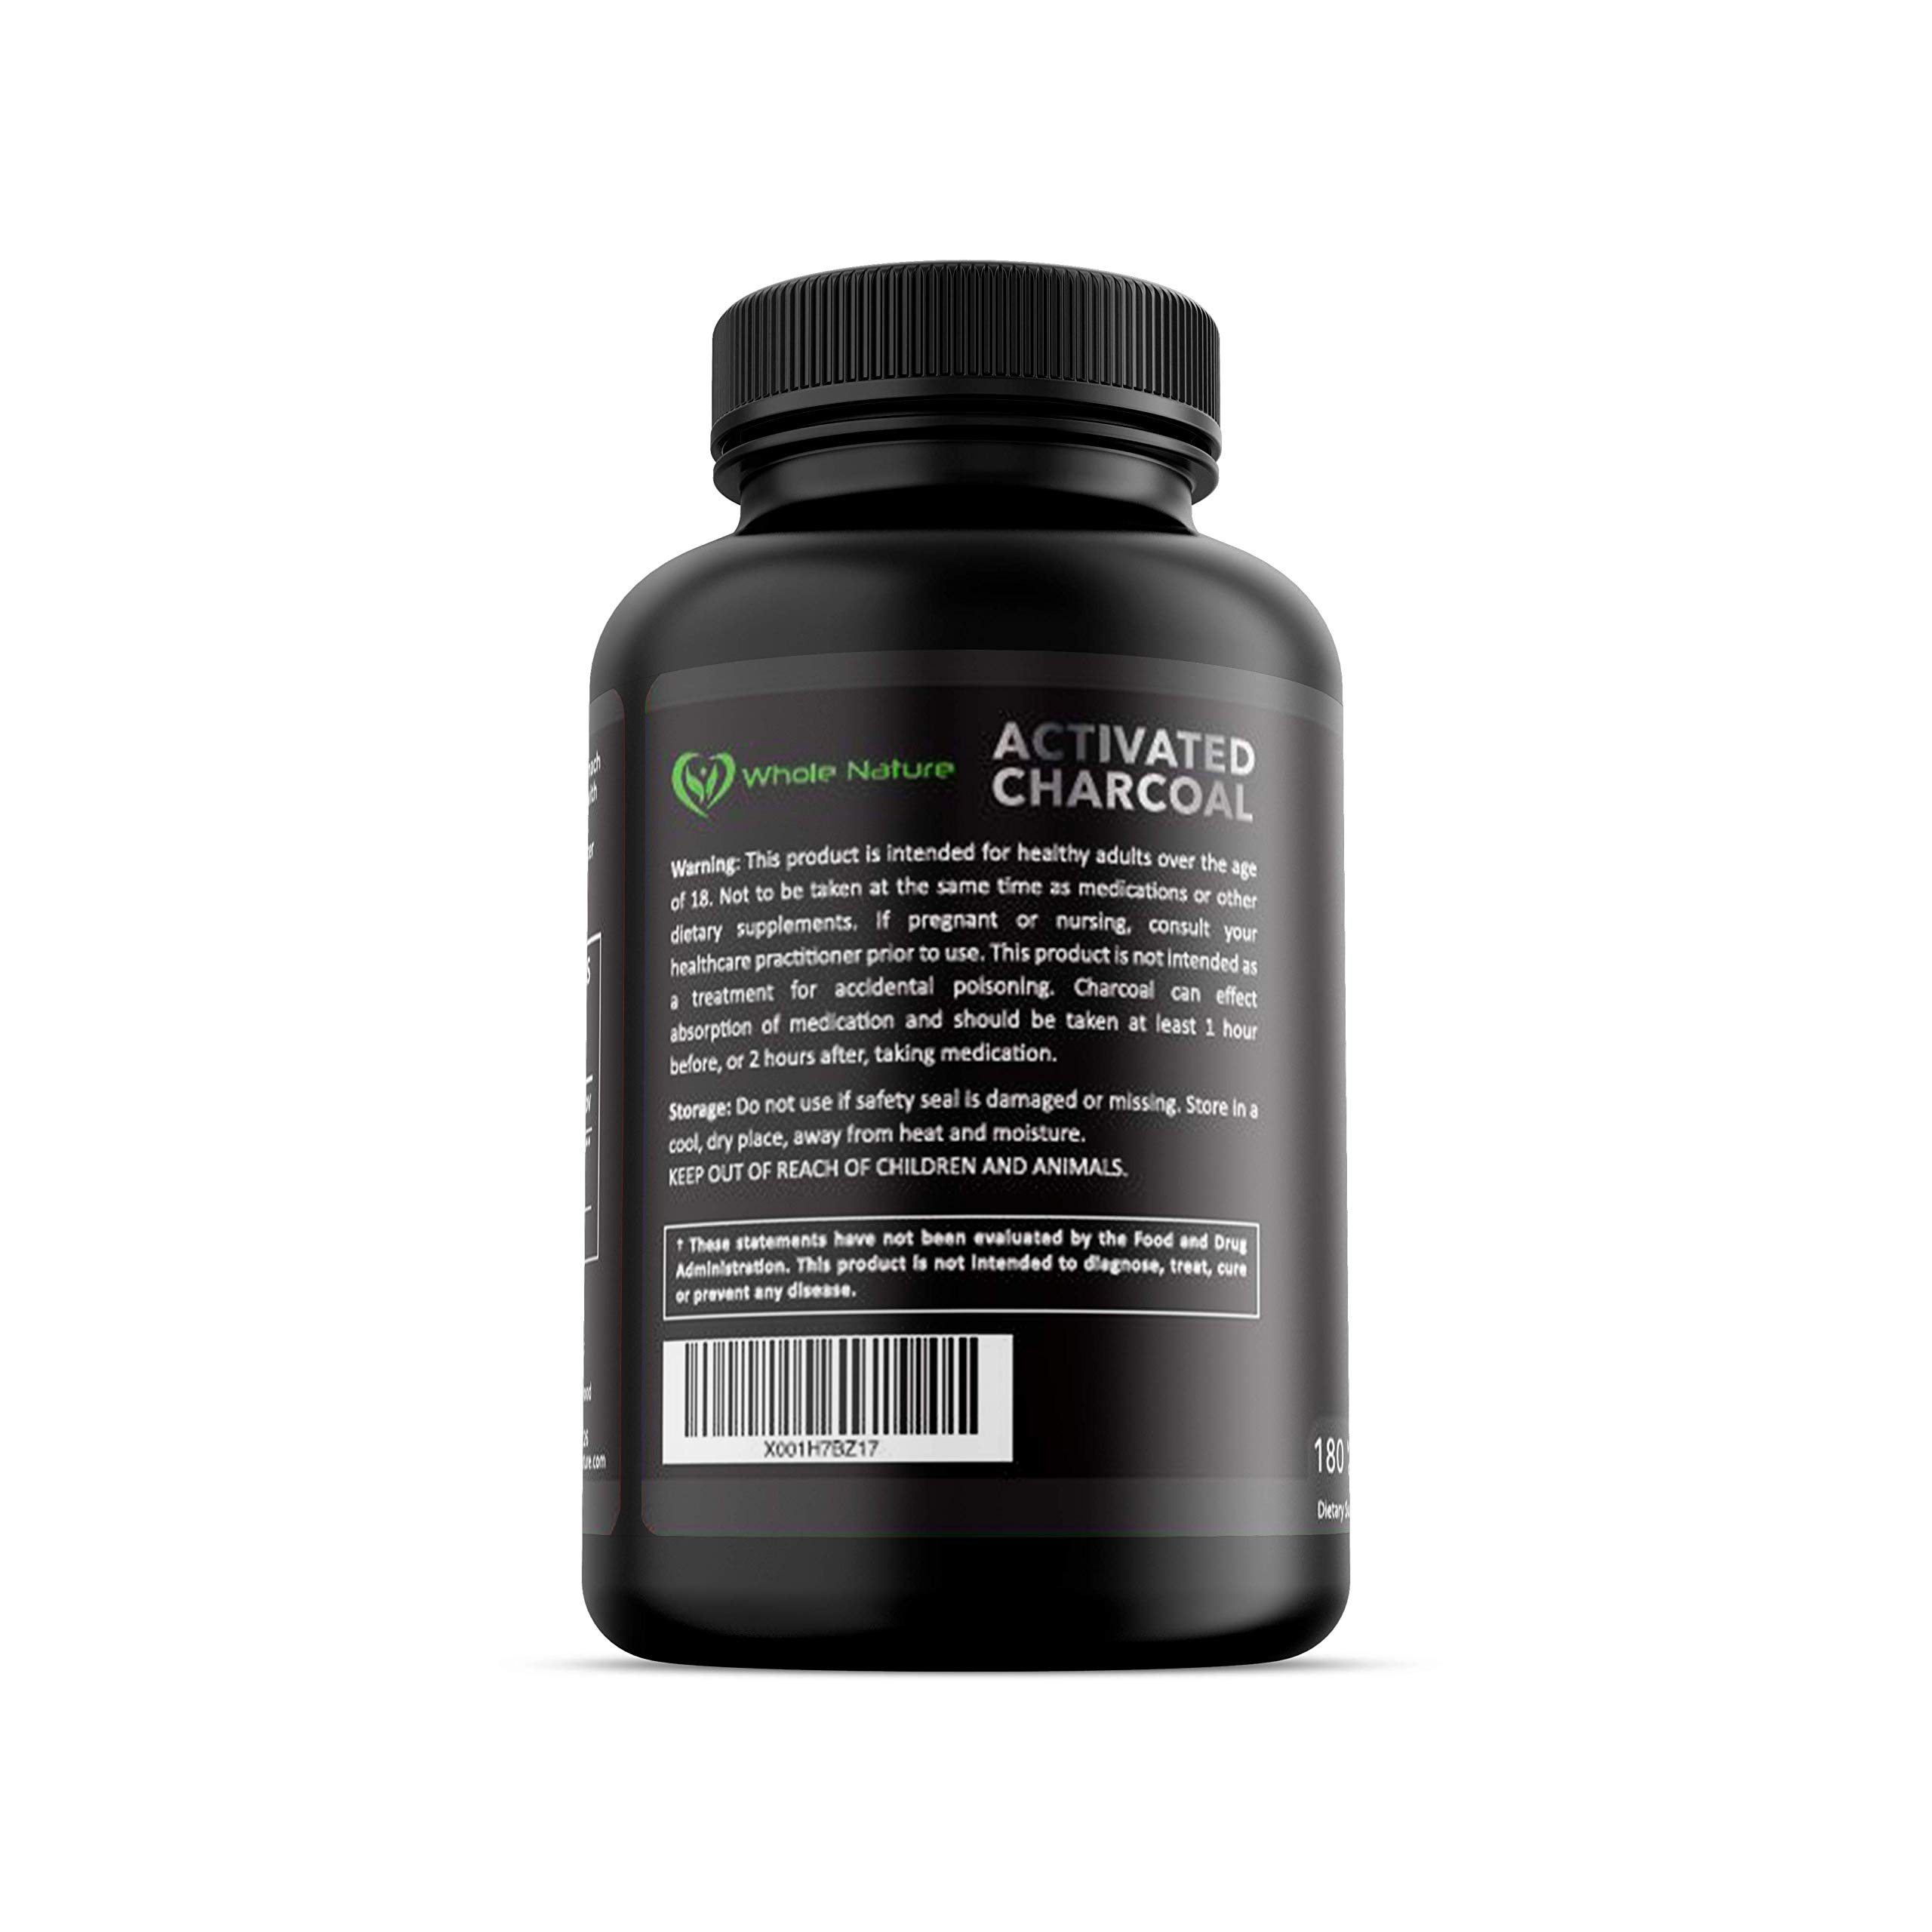 Whole Nature 180 Capsules Pure Organic Coconut Activated Charcoal Supplements Natural Pills for Body Detox Digestive System Teeth Whitening Detoxification Gas Stomach Bloating Tablets by Whole Nature (Image #8)